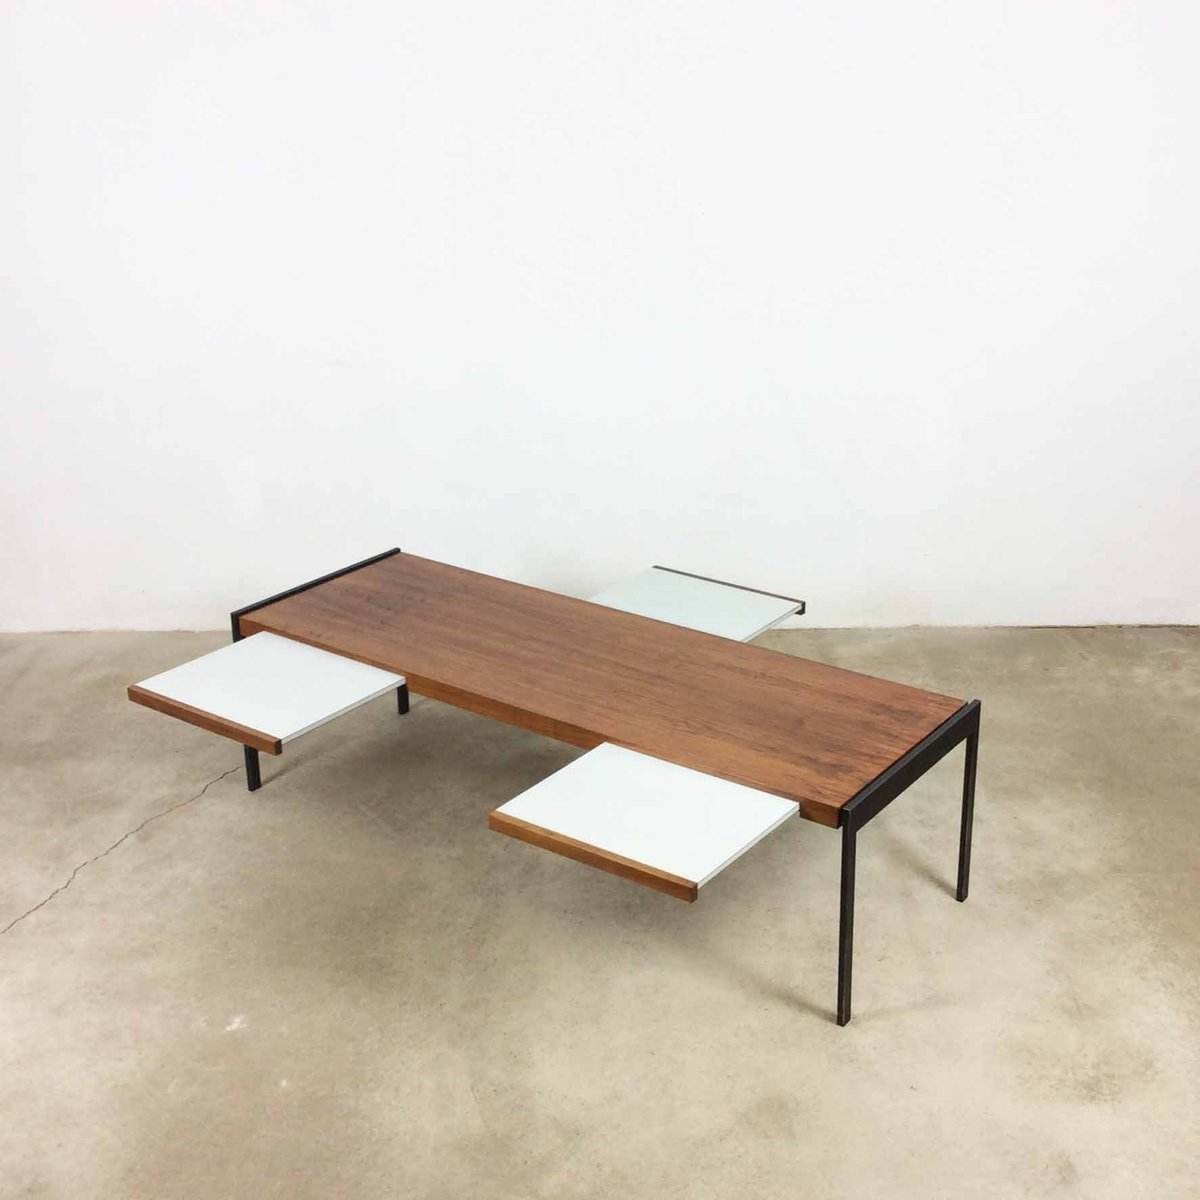 table basse en noyer par wilhelm renz 1960s en vente sur pamono. Black Bedroom Furniture Sets. Home Design Ideas